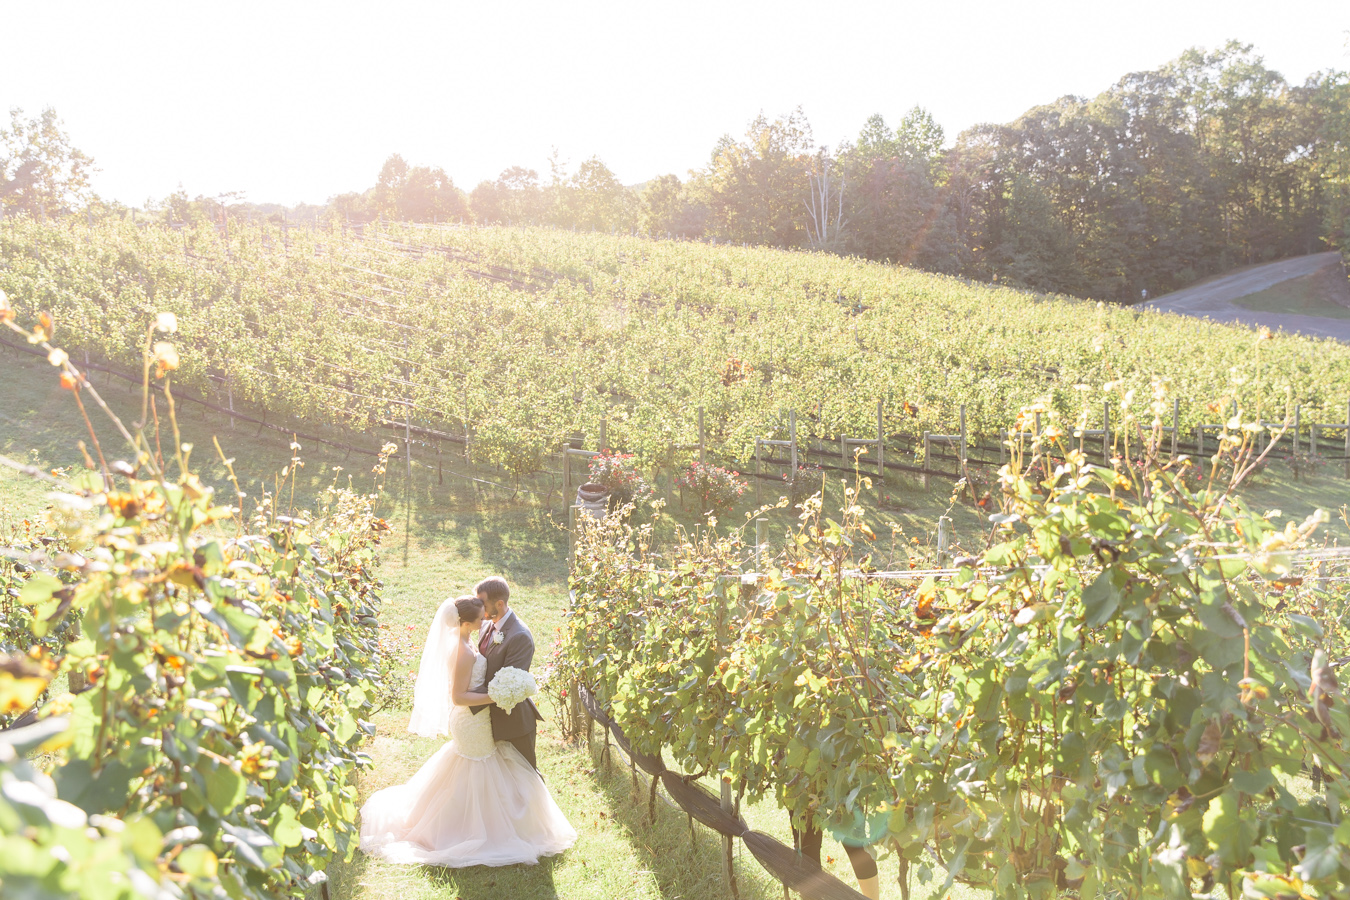 Magnificent sunlight for Renae & JC's Potomac Point Winery Wedding - Bonnie Sen Photography